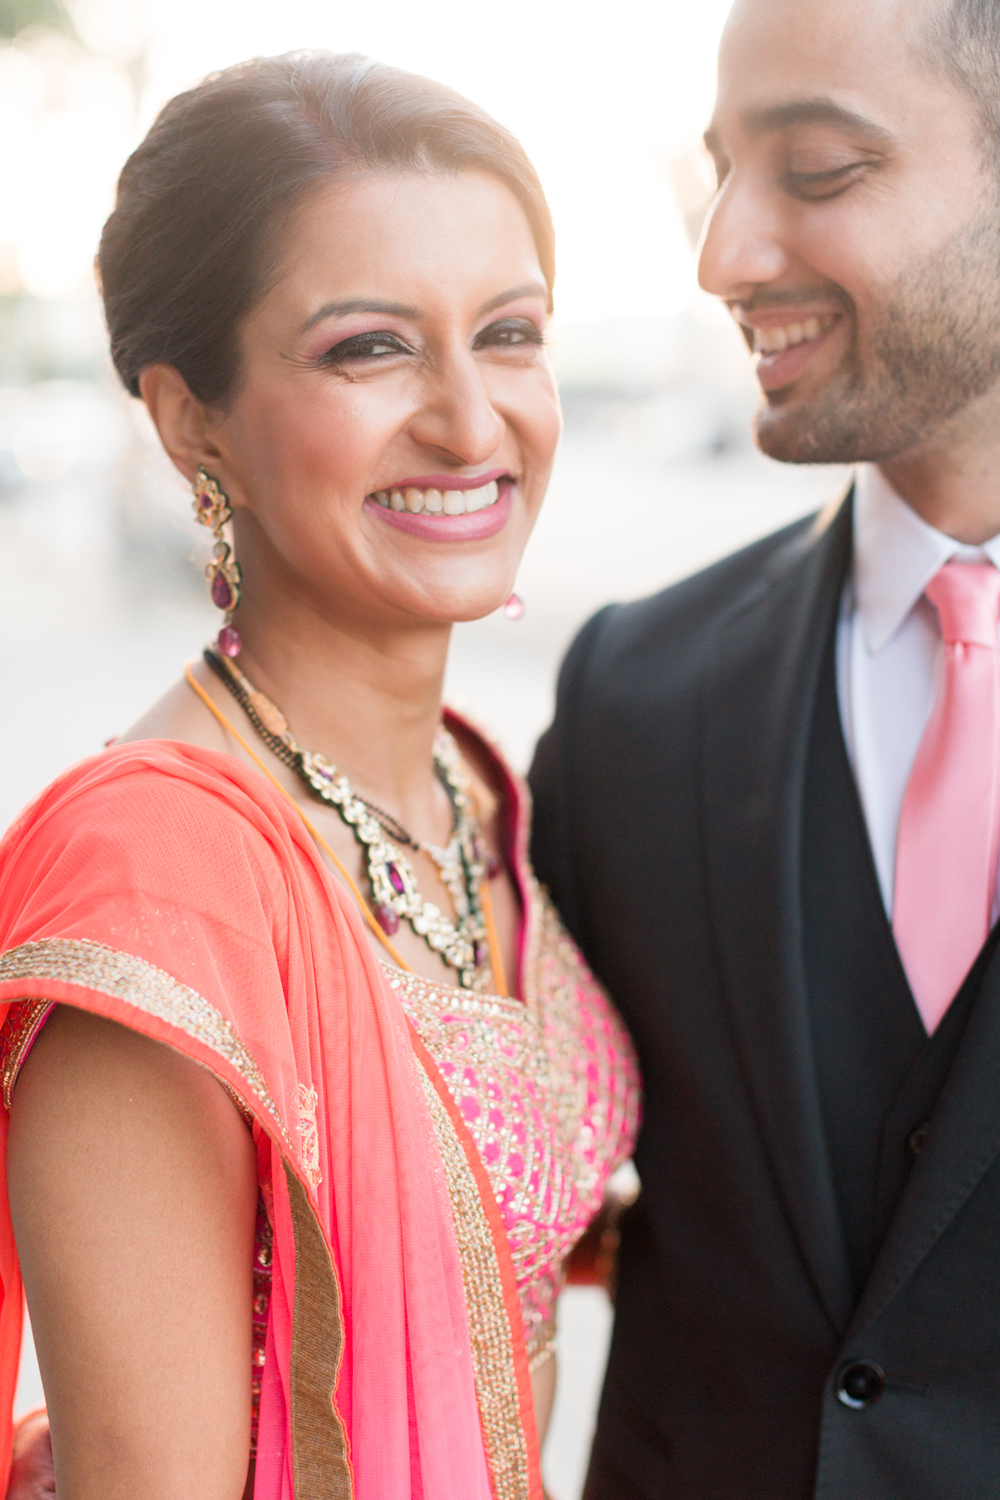 CourtneyPaige_WeddingPhotography_Nagjee-106.jpg